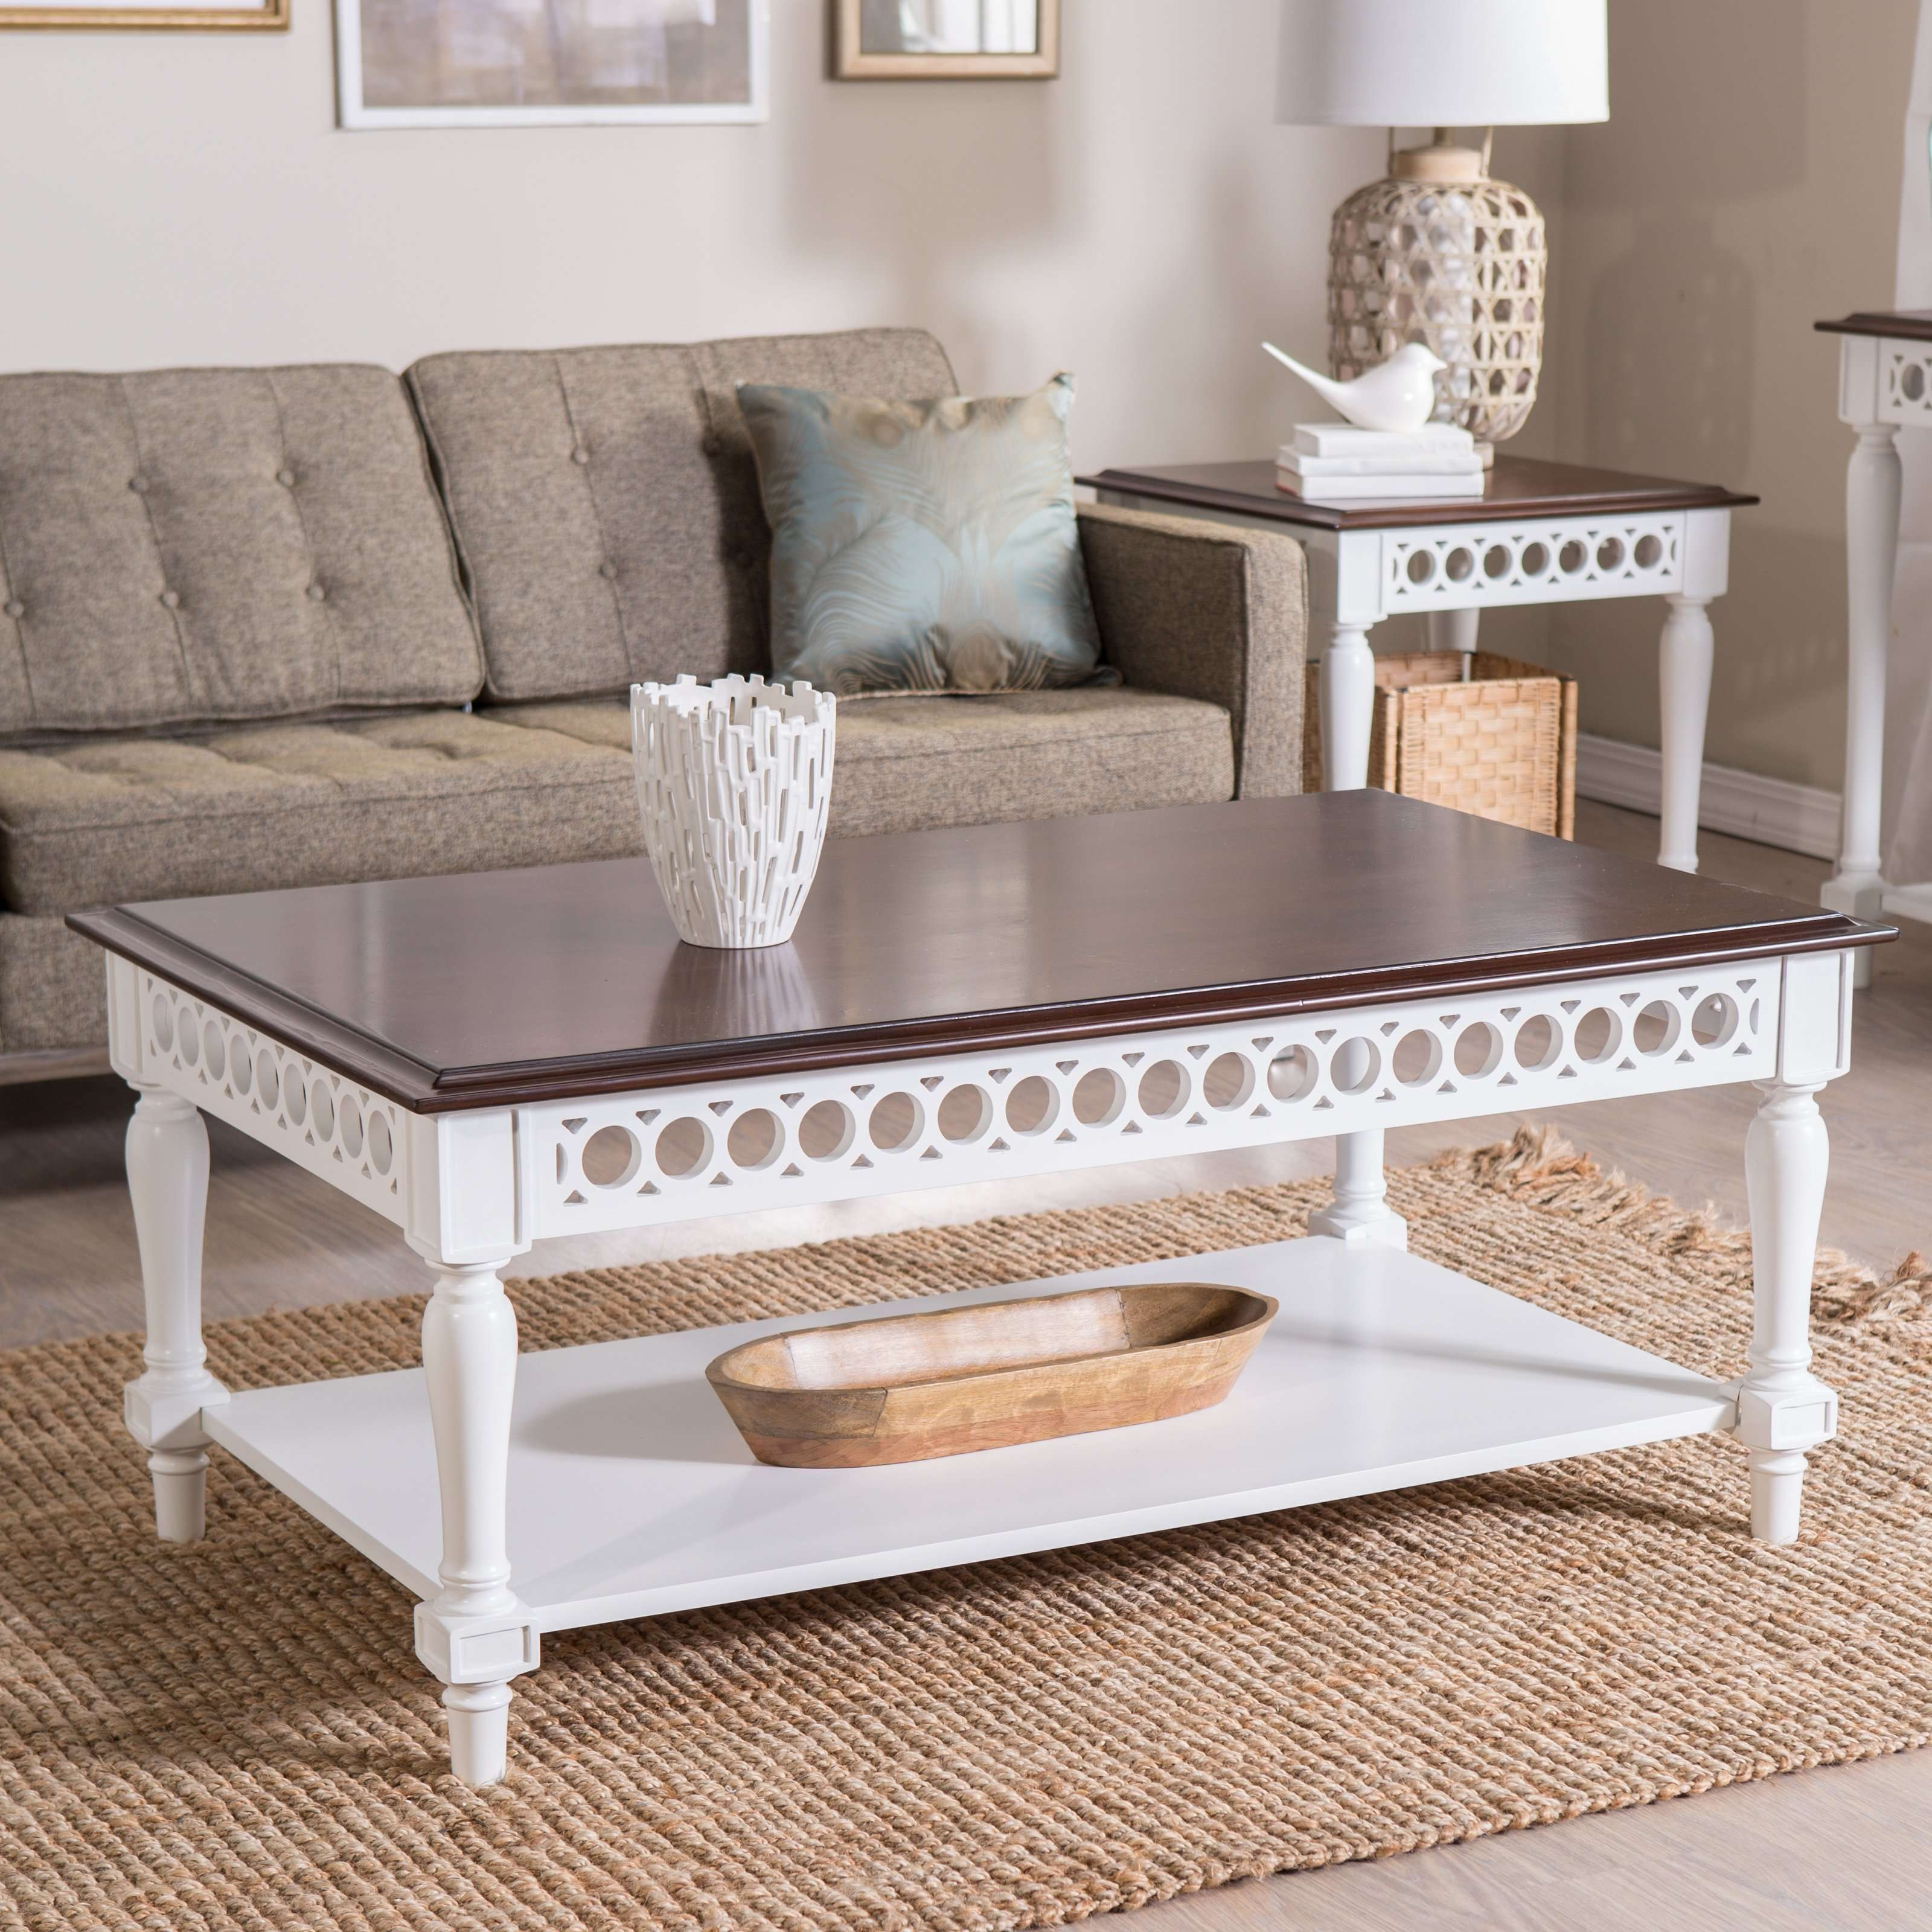 Wooden Coffee Table With White Base And Brown Coffee Table Top For Inside Latest White And Brown Coffee Tables (View 11 of 20)